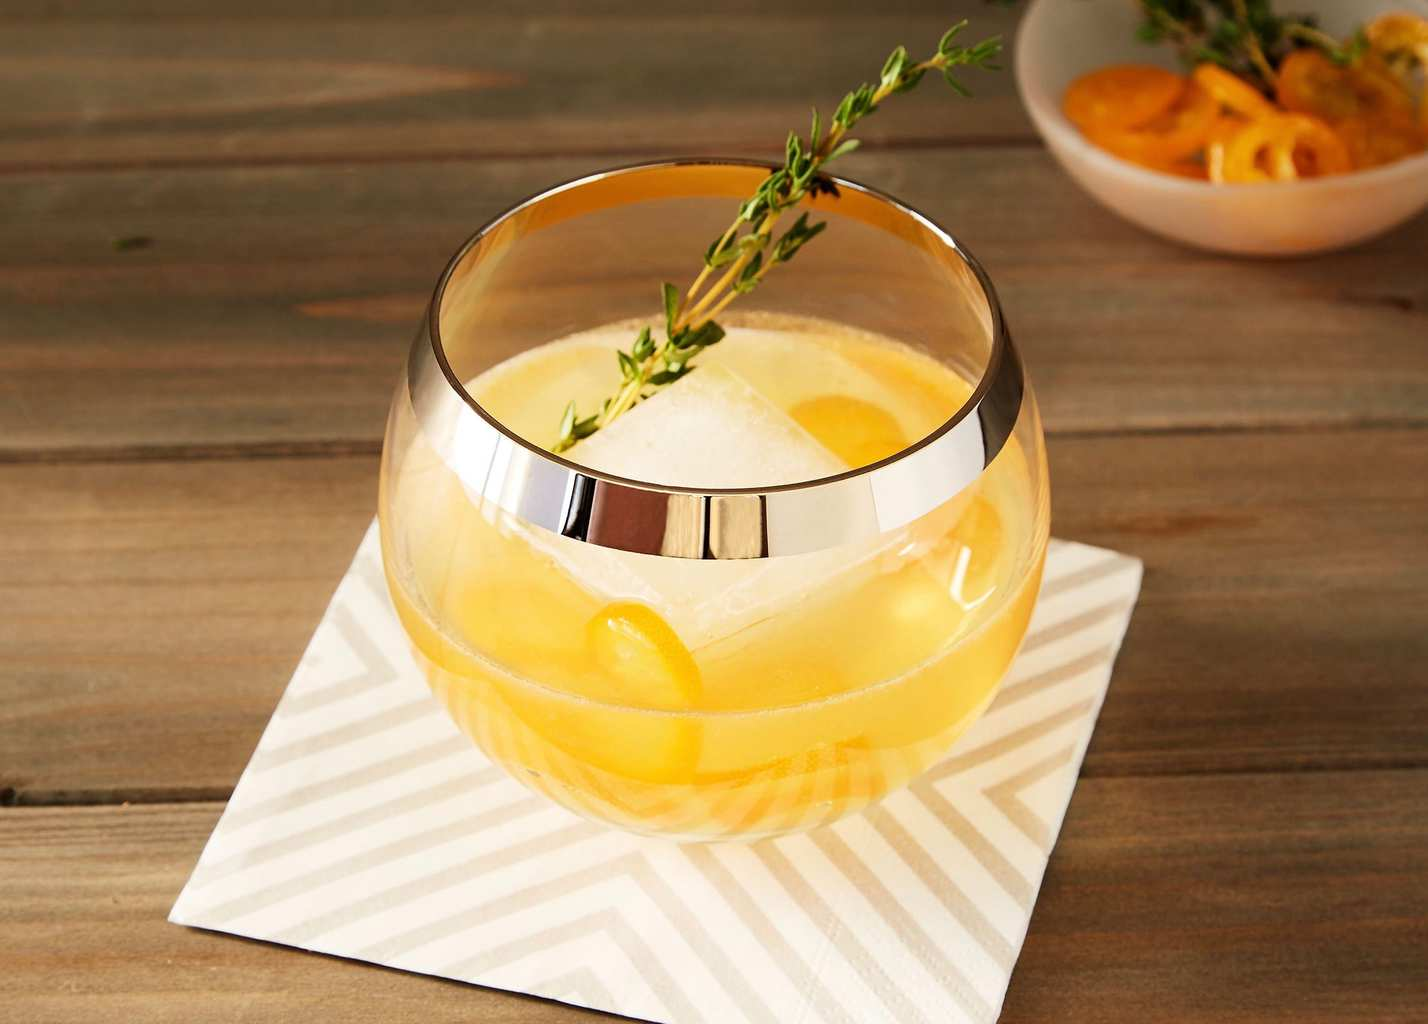 Kumquat Thyme Cocktail in gold-rimmed glass with thyme sprig on wood and striped napkin